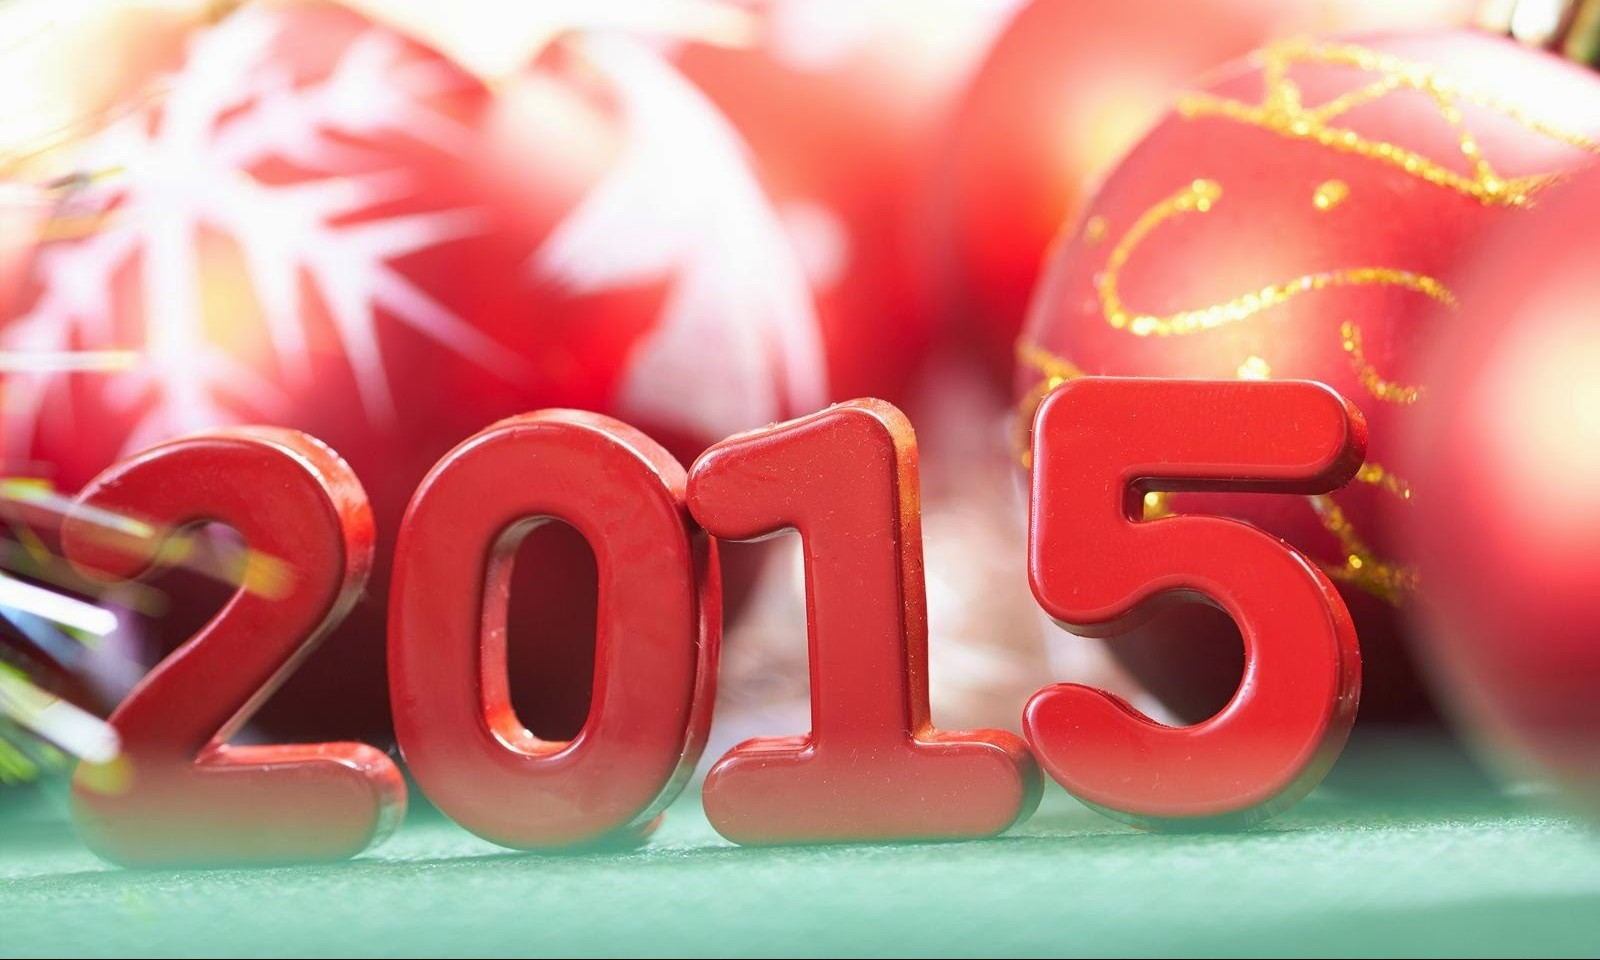 lovely_occasion_of_happy_new_year_2015